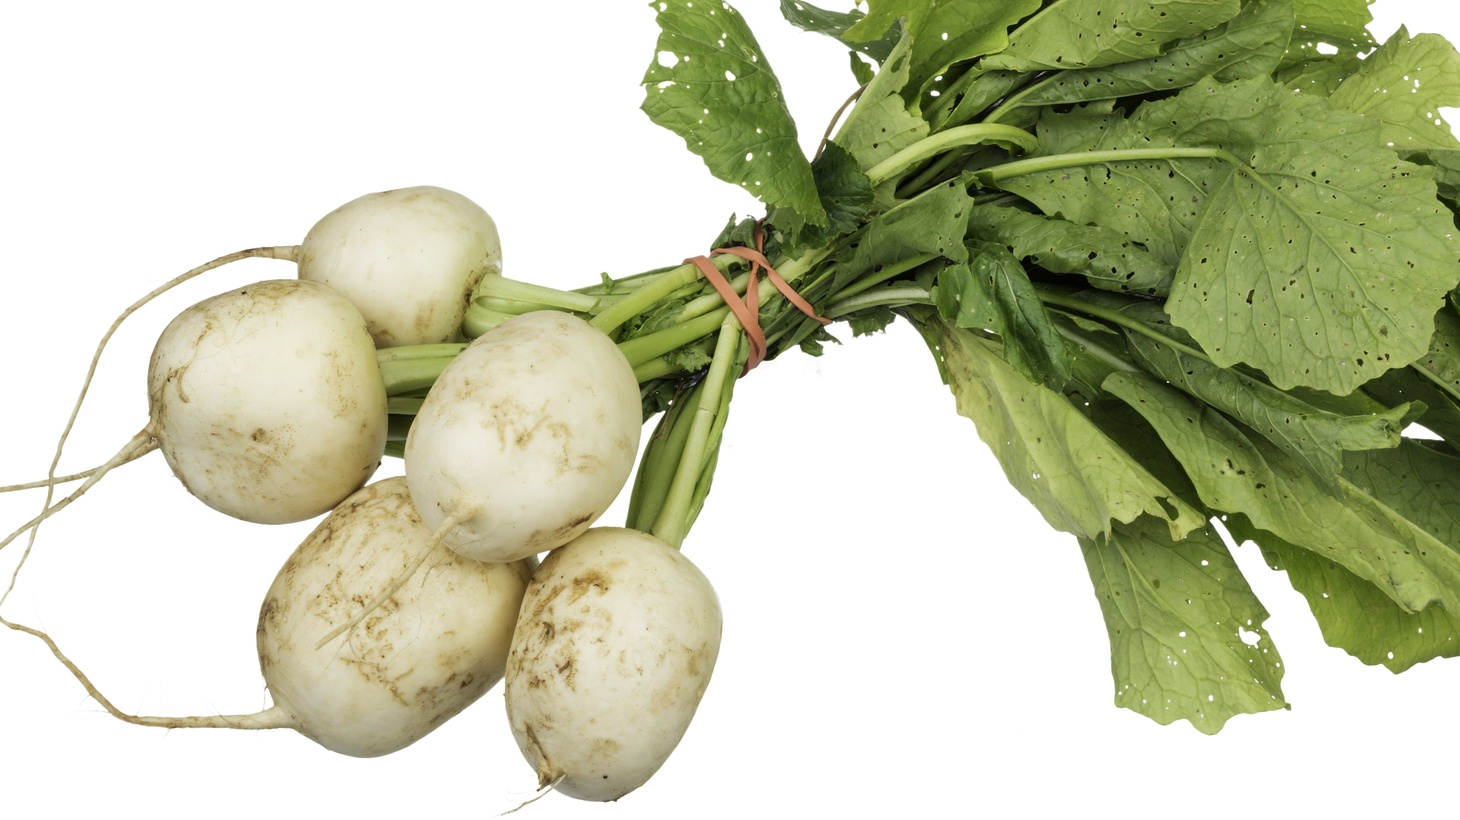 Tokyo Turnips are tender, slightly spicy and taste like a cross between a radish and a turnip.